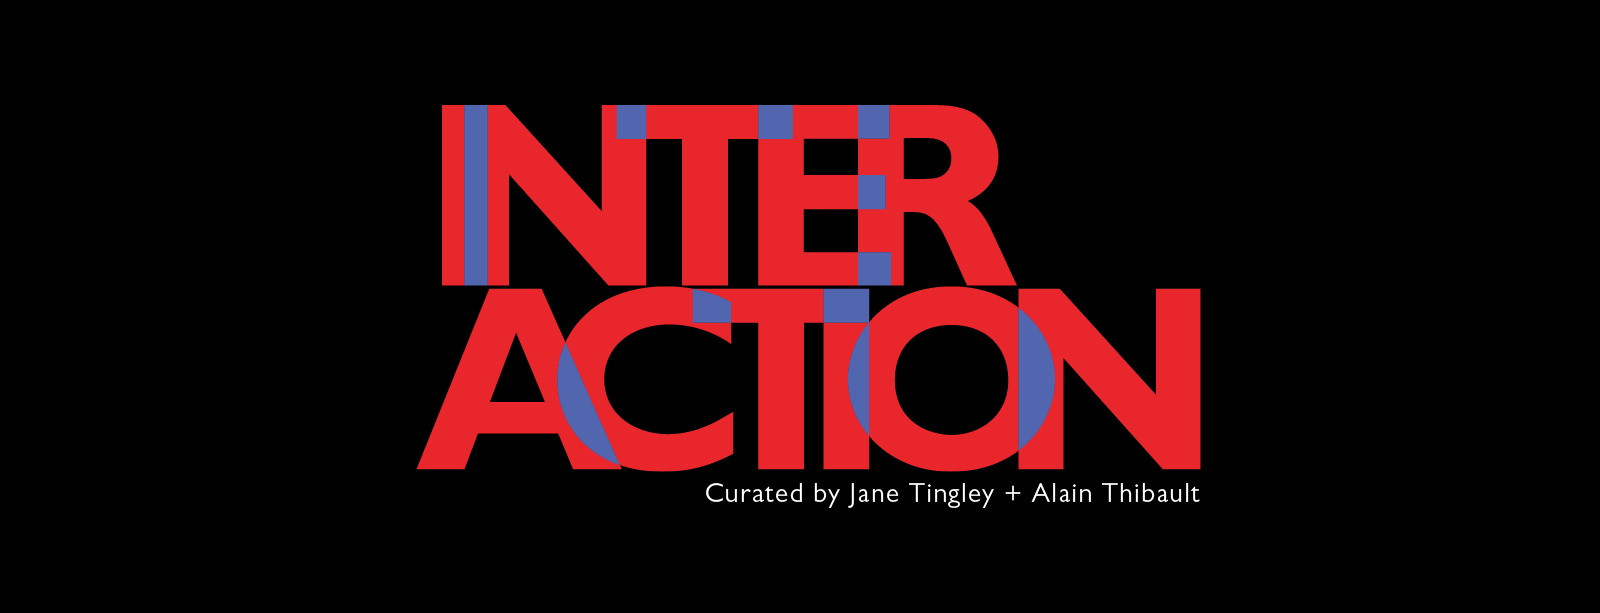 Interaction word logo